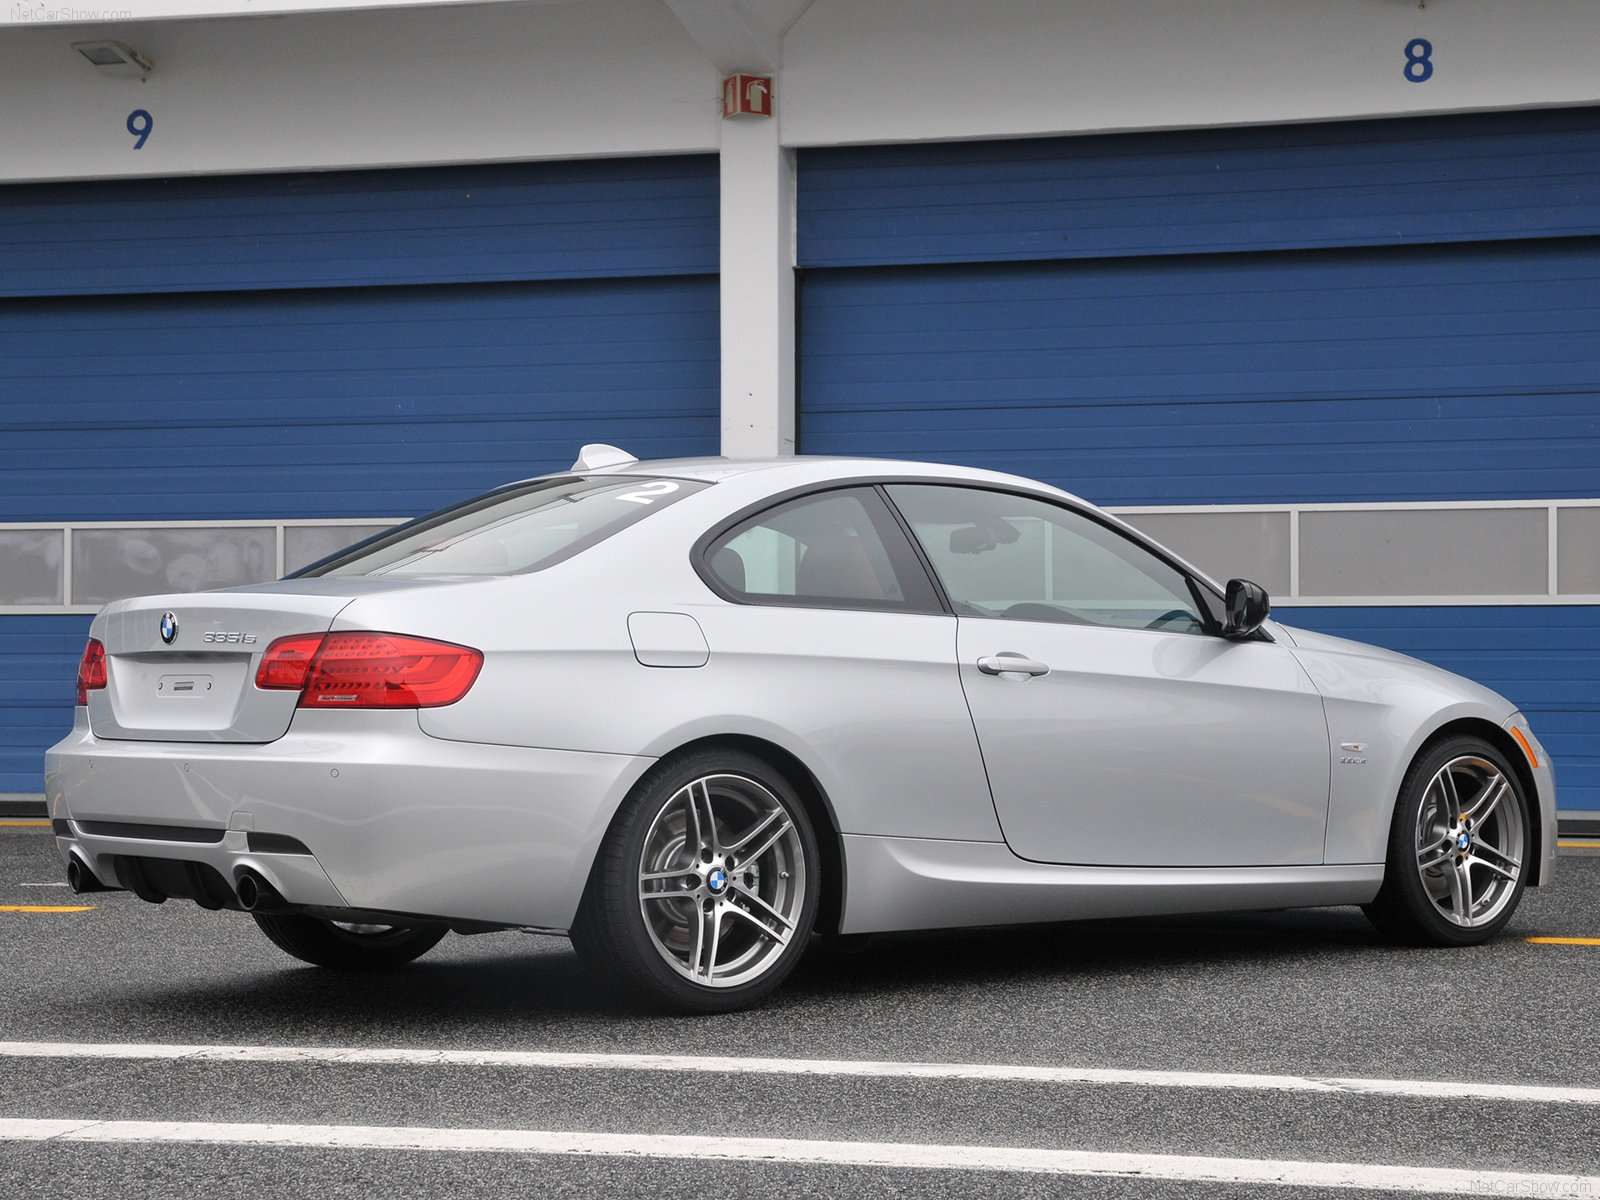 BMW Is Coupe Photos PhotoGallery With Pics CarsBasecom - 2012 bmw 335is